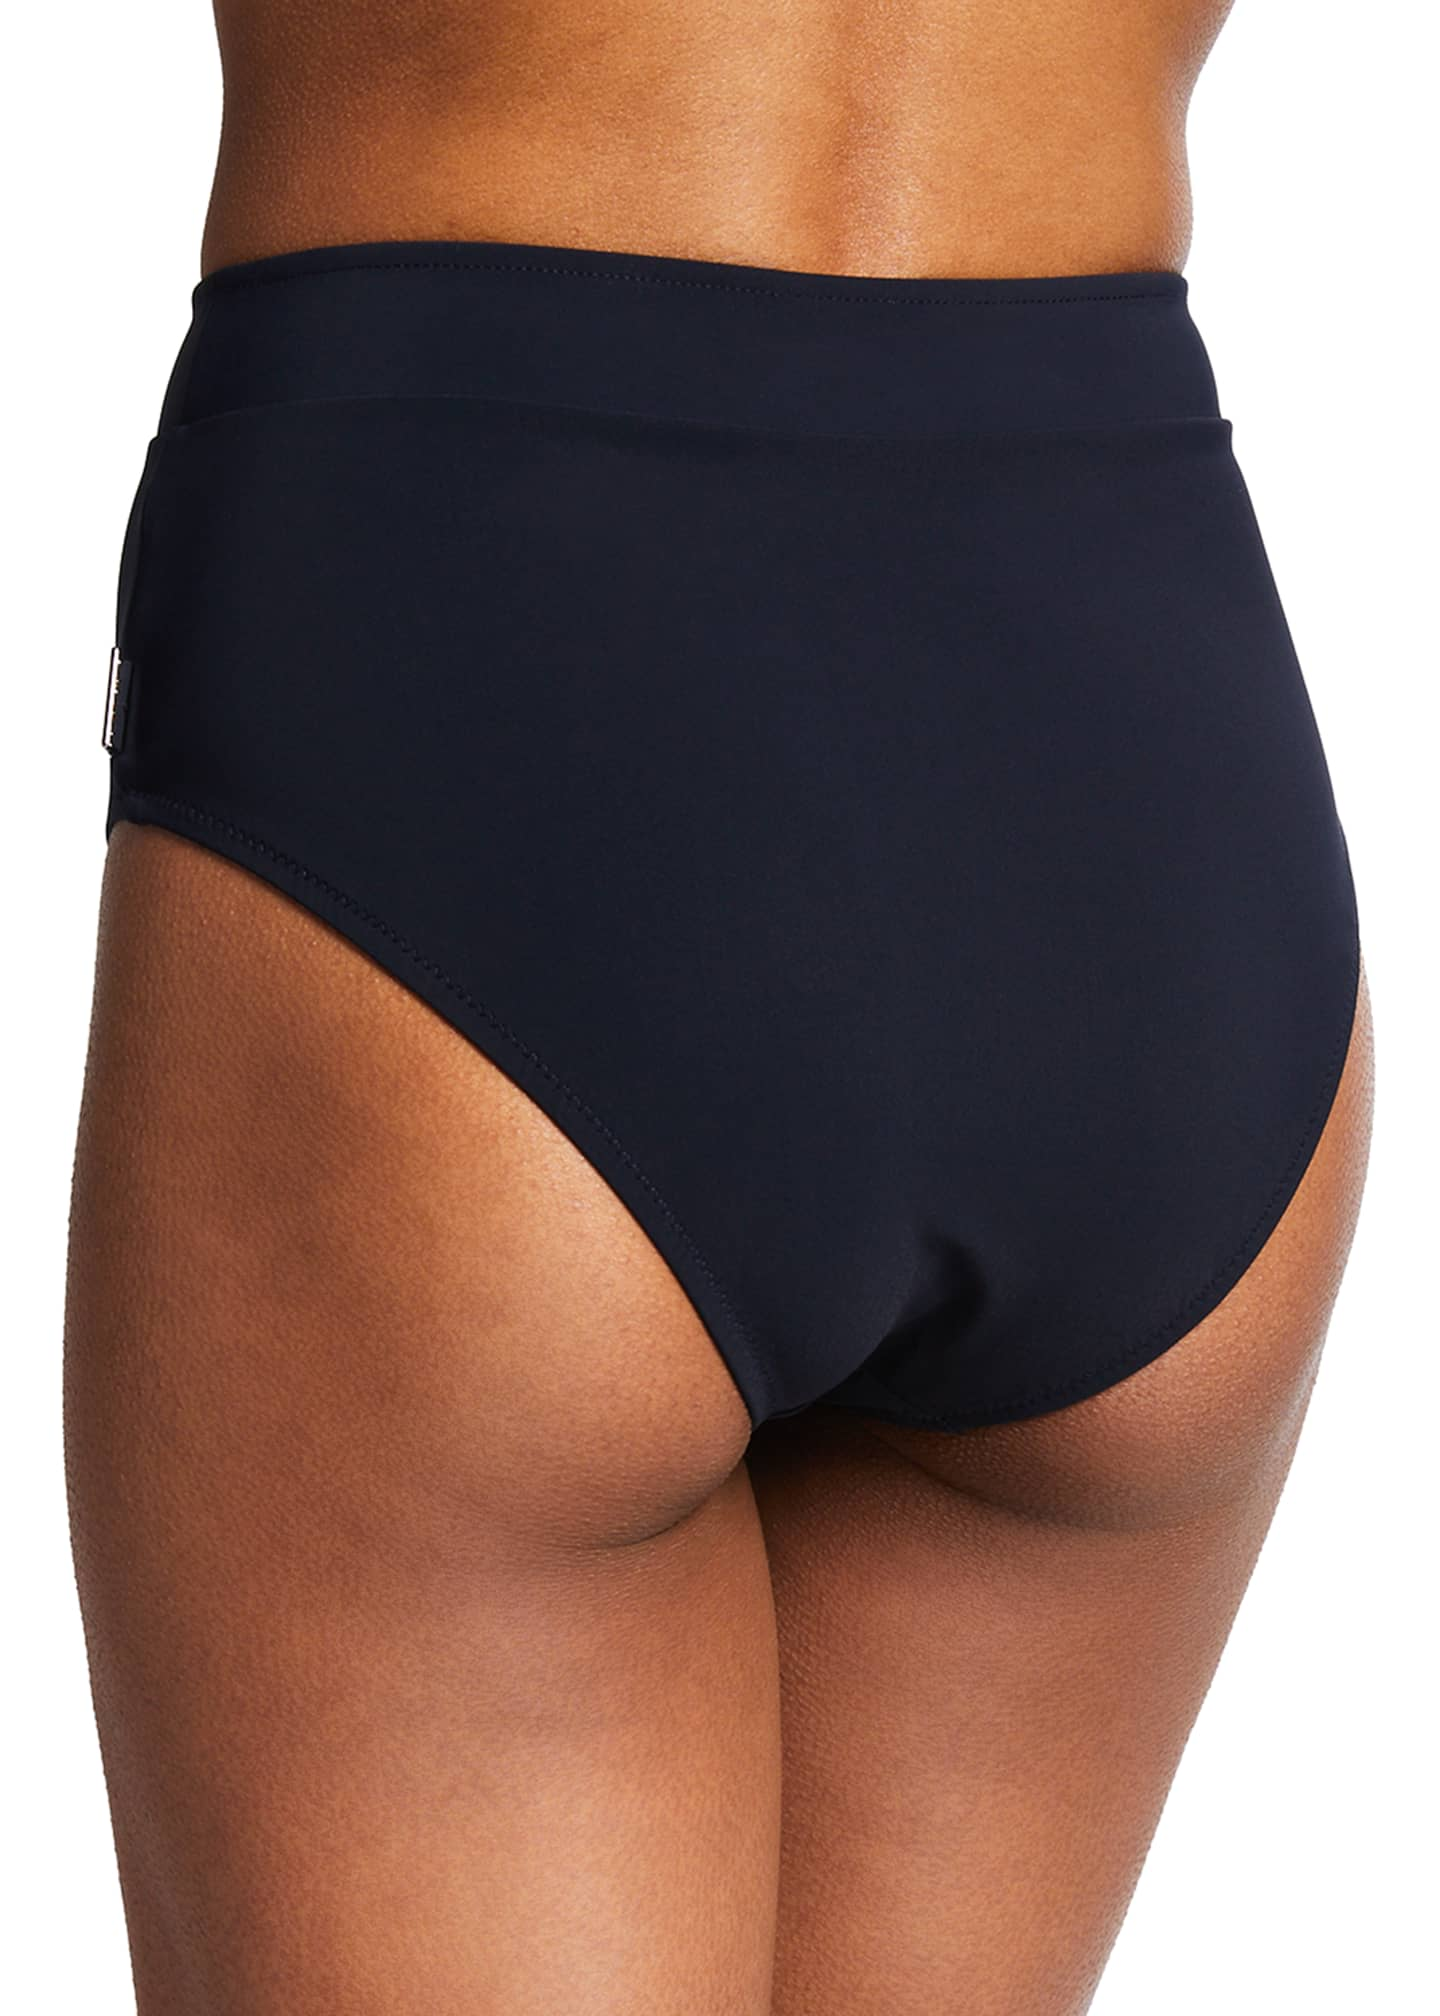 Image 2 of 2: Classique High-Waist Swimsuit Bottom